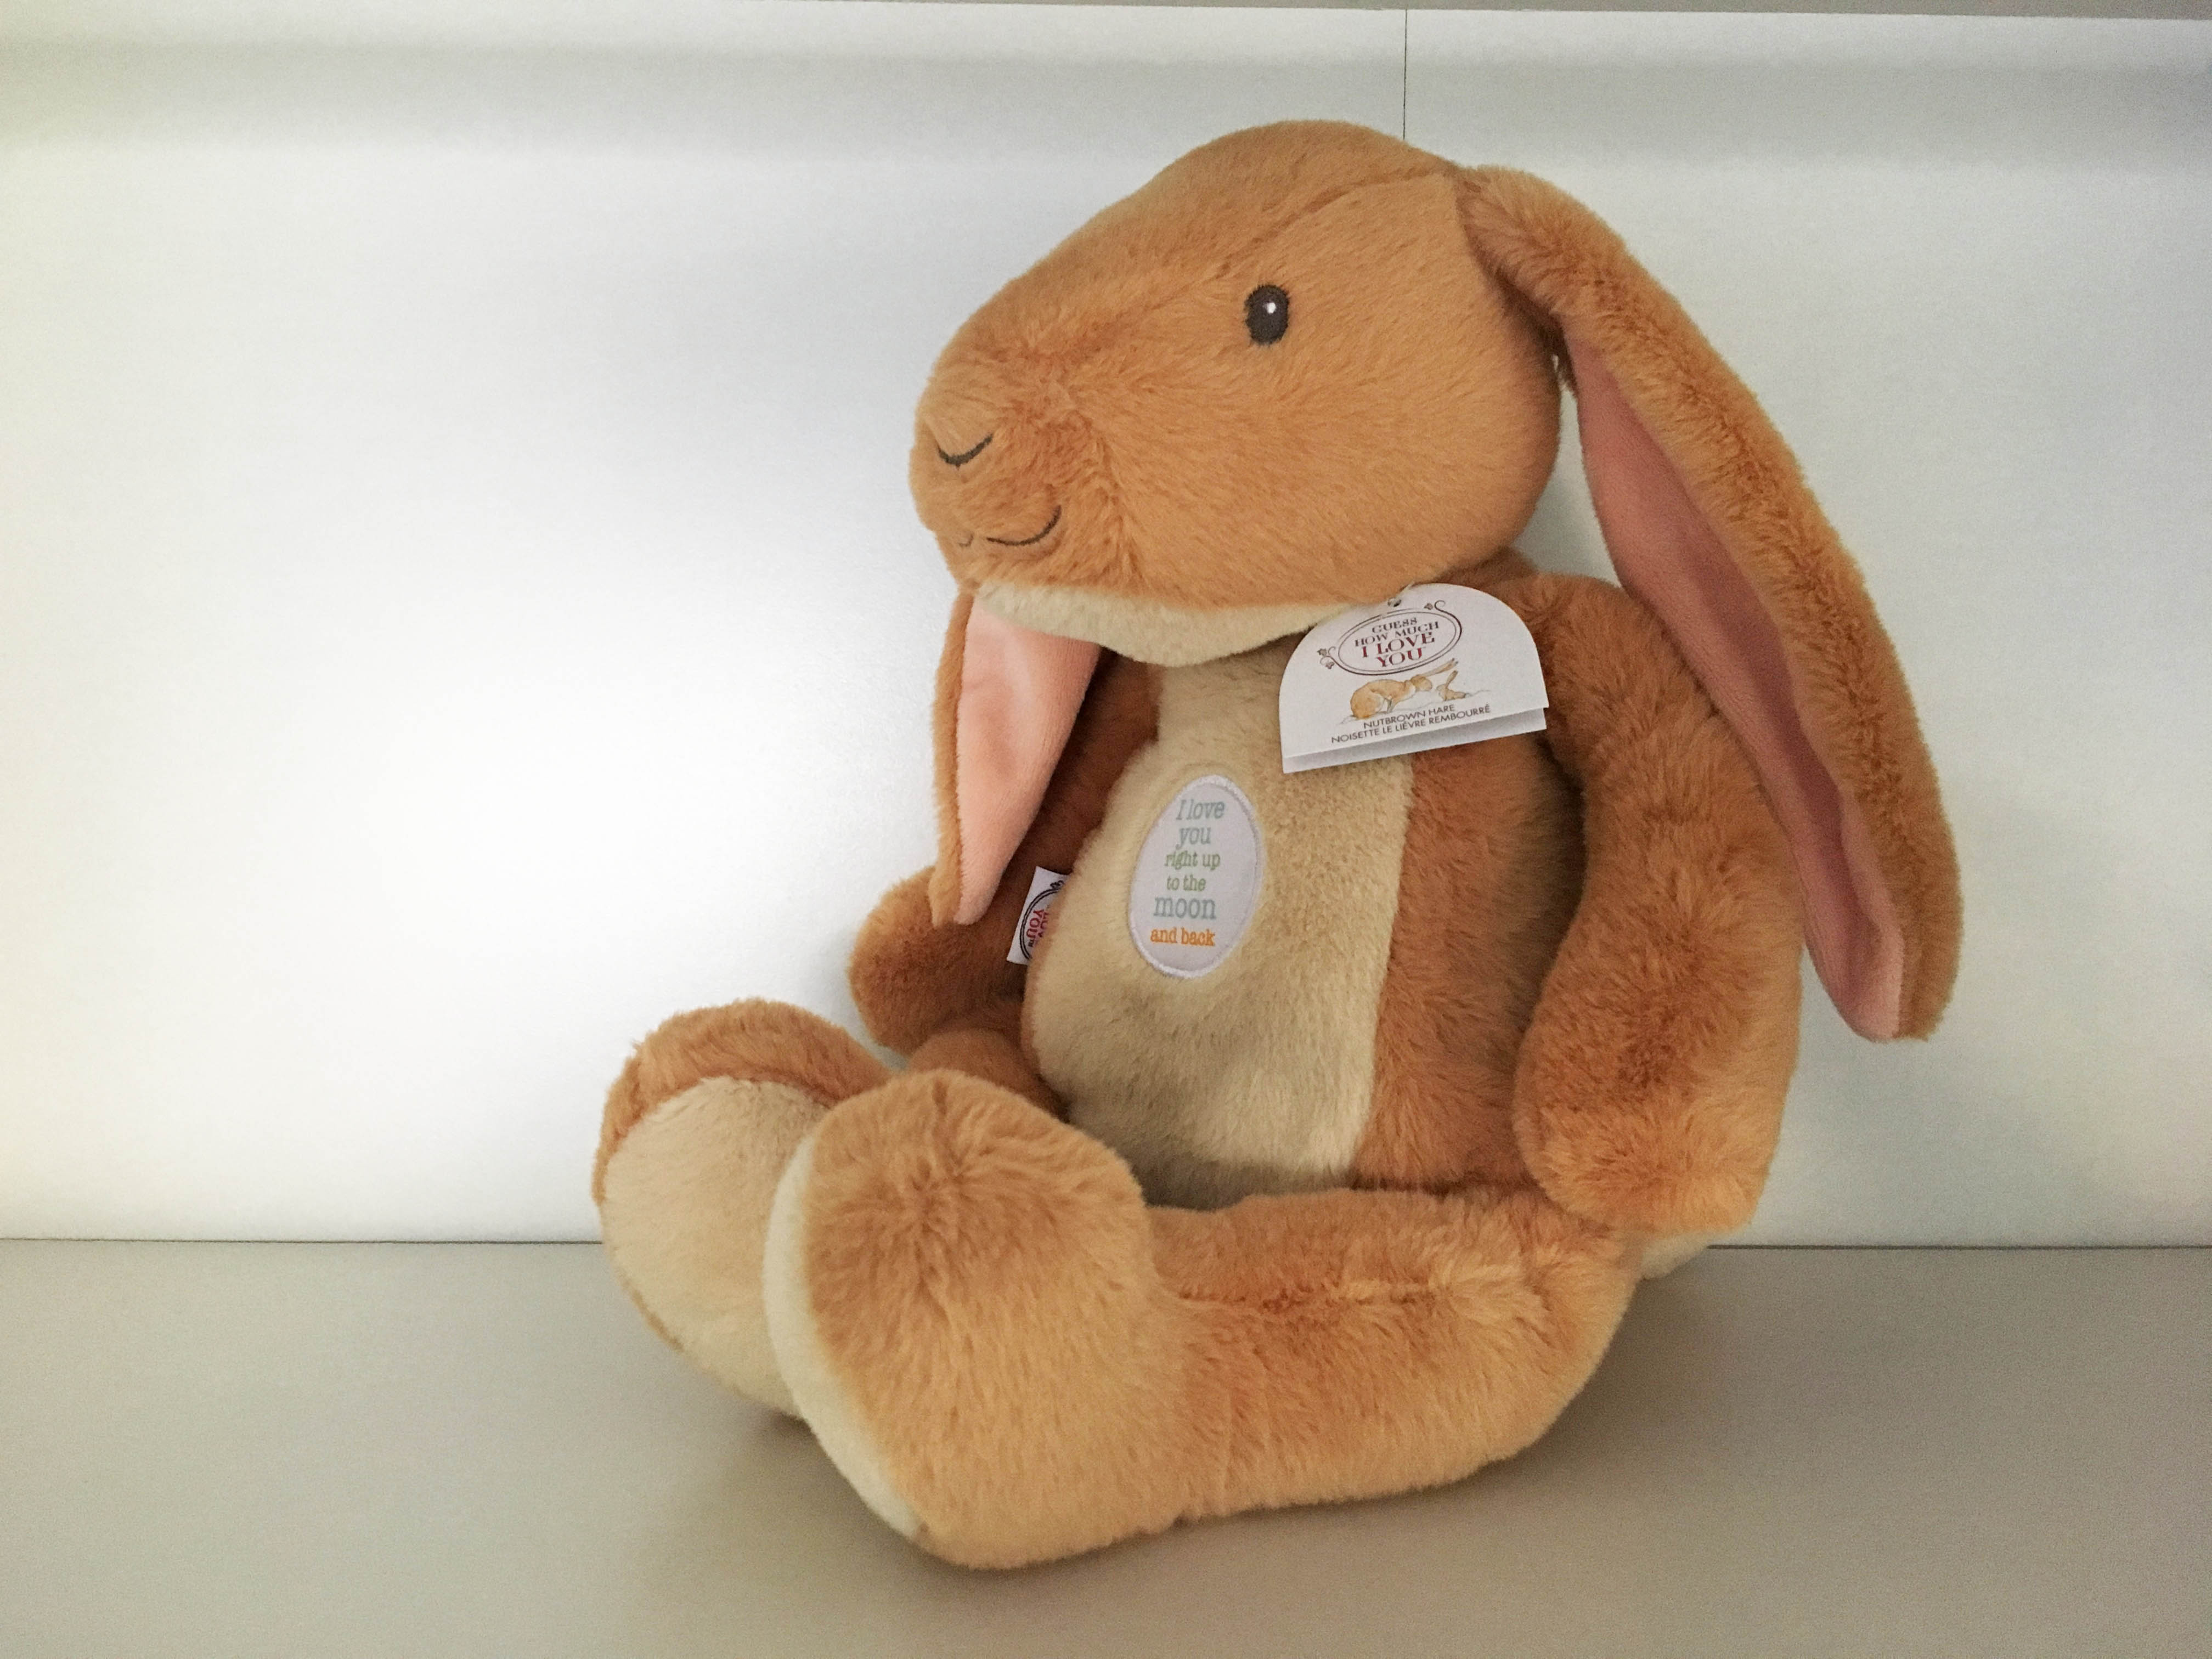 Guess How Much I Love You Nutbrown Hare Bunny Large